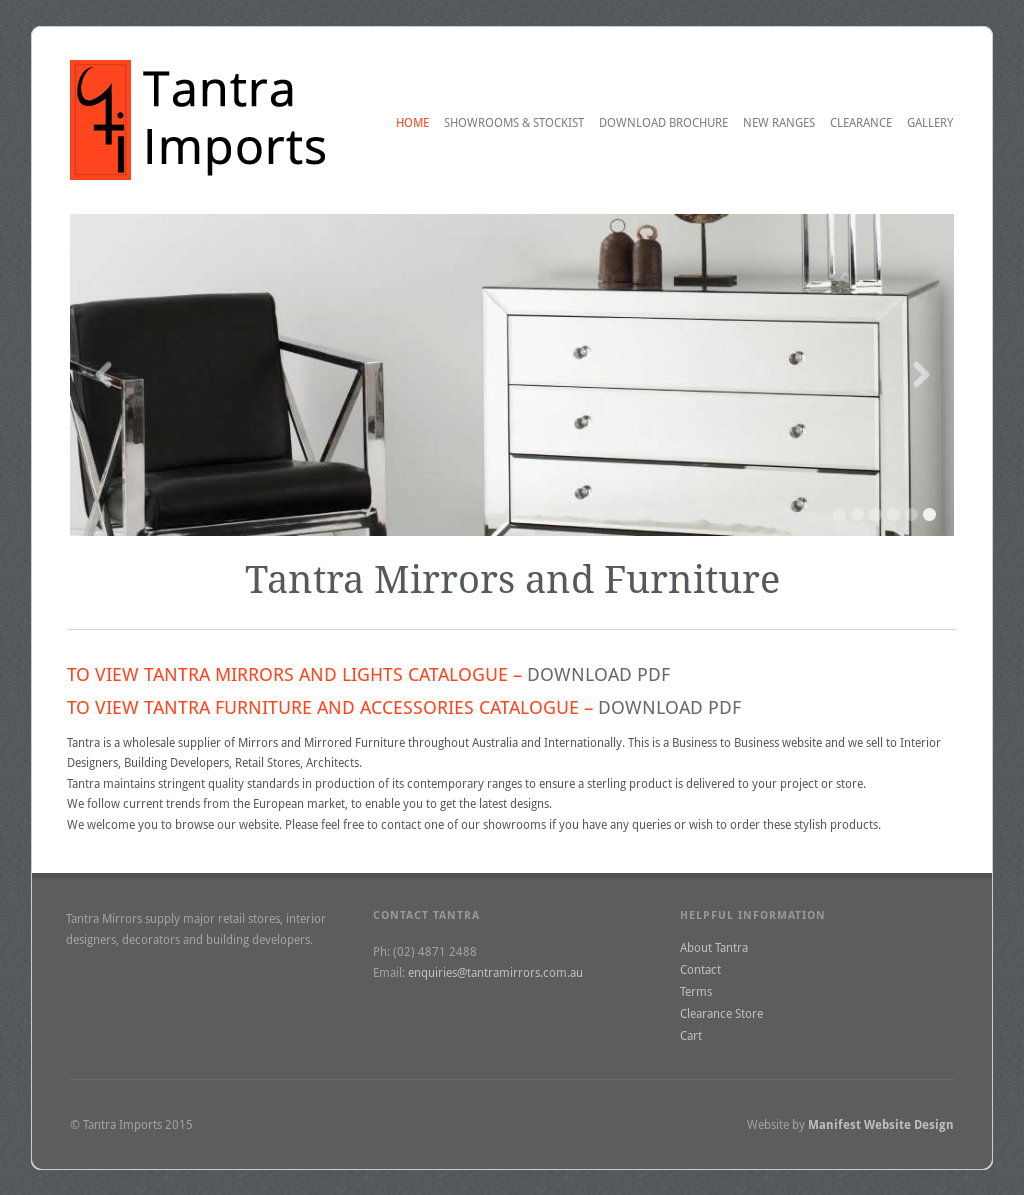 Tantra Imports Competitors, Revenue and Employees - Owler